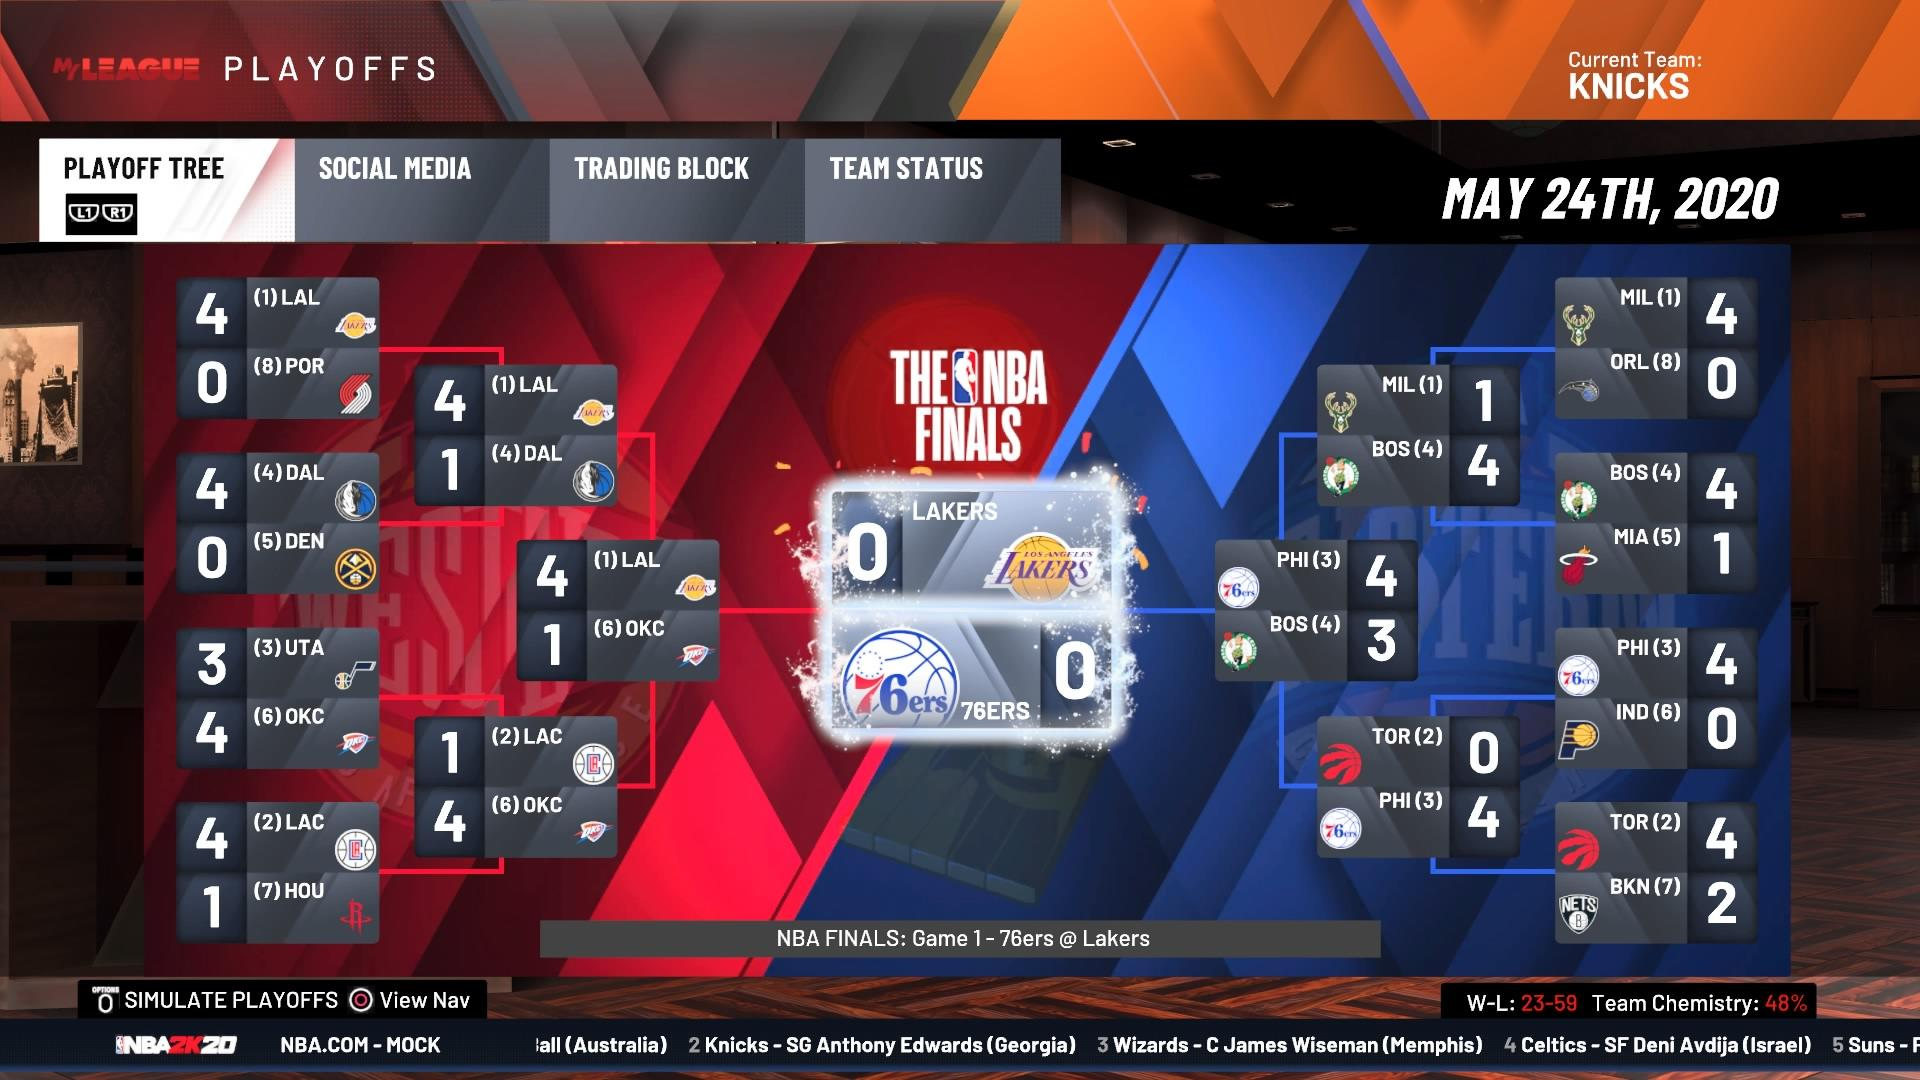 Nba 76ers Win Title In Nba 2k20 Simulation